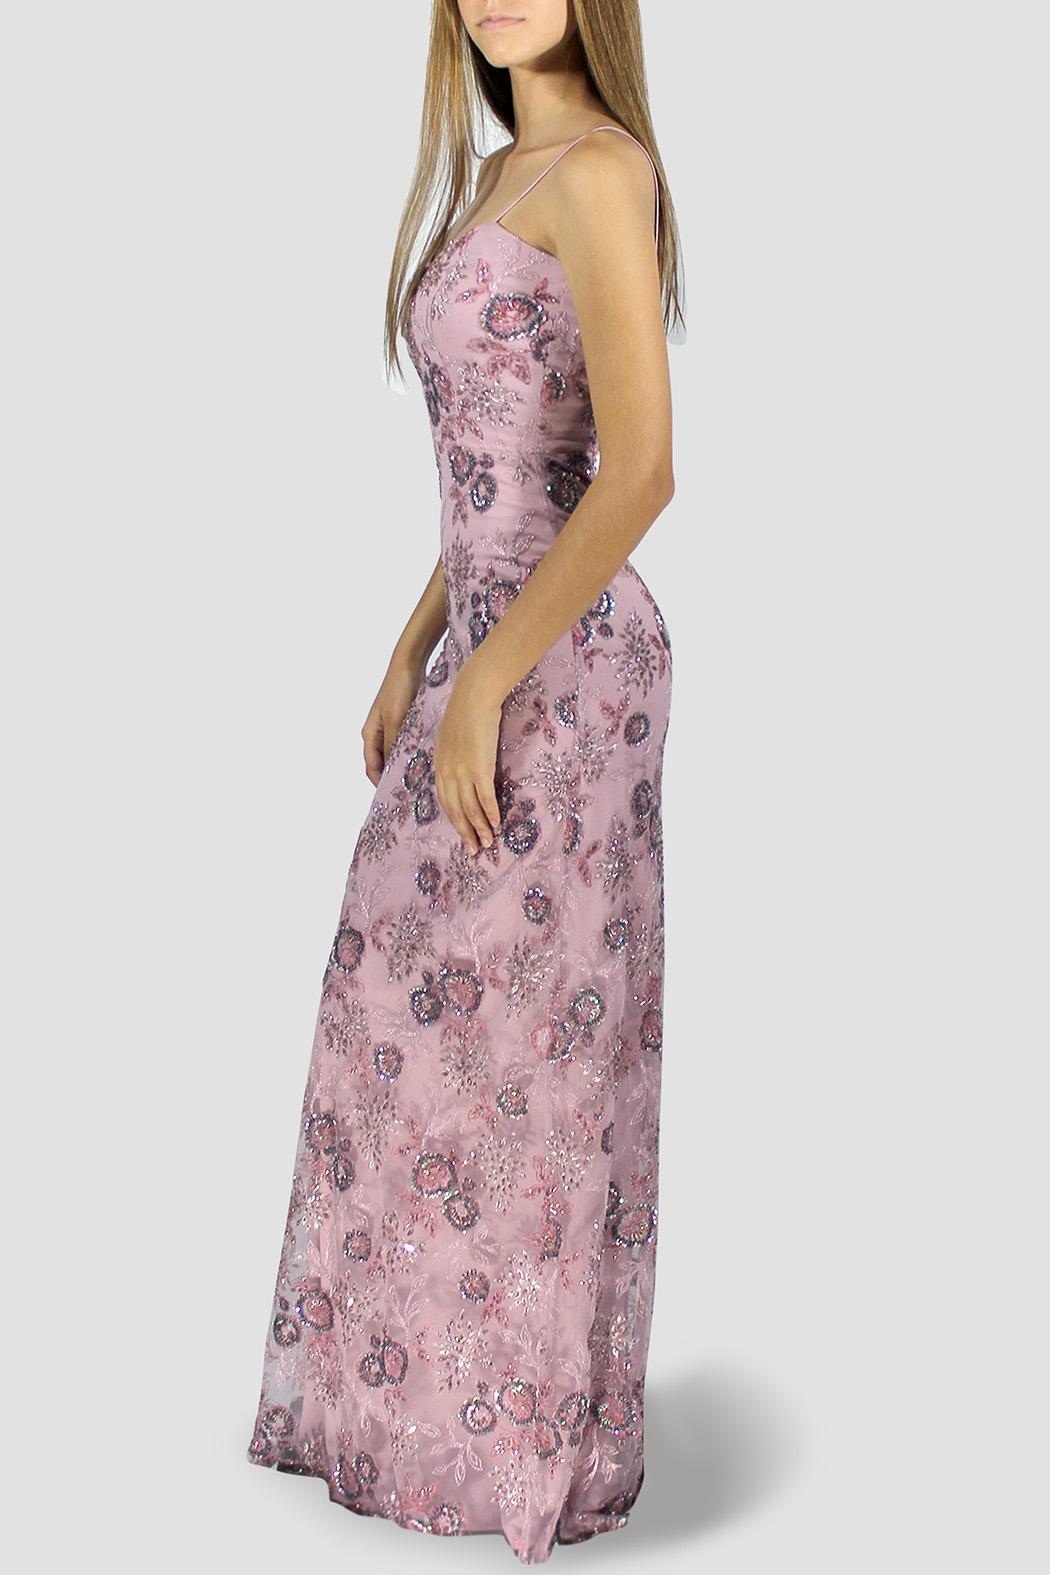 SoZu Periwinkle Floral Lace Dress - Front Full Image